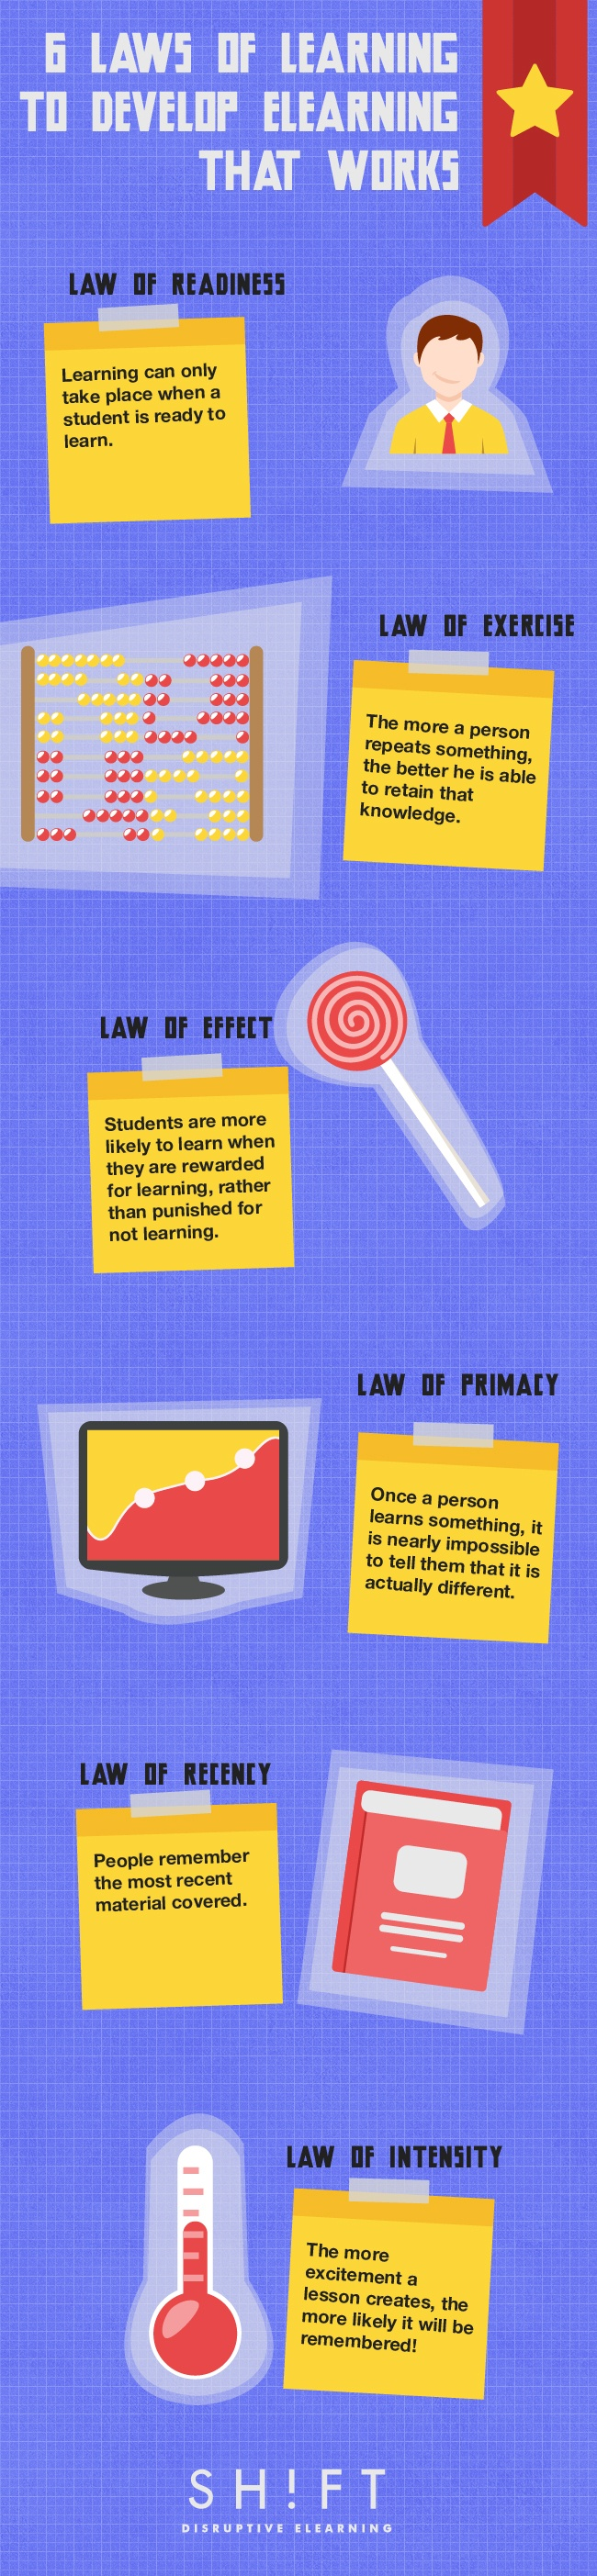 6 Laws of Learning To Develop eLearning Infographic